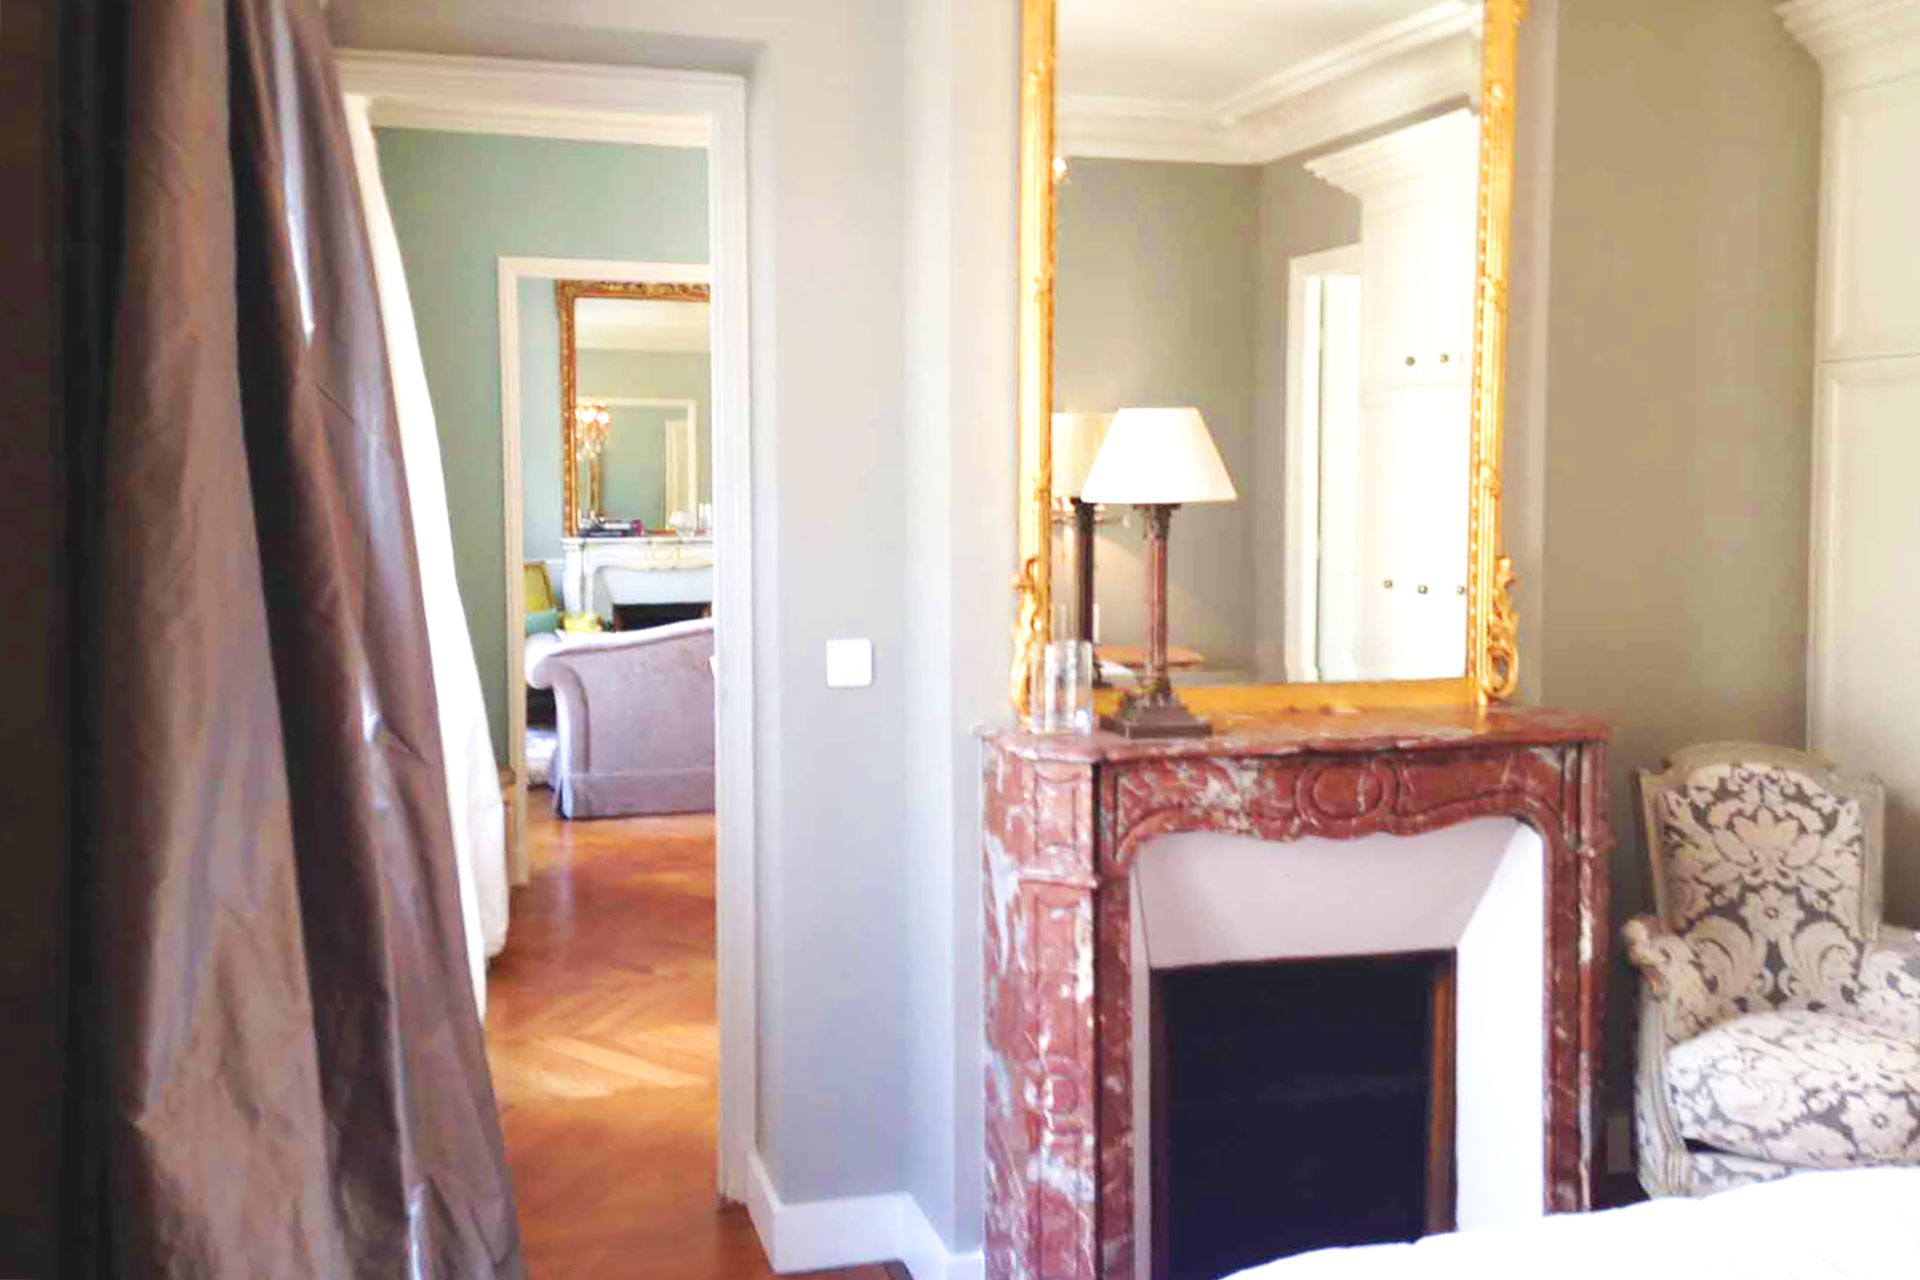 View from the first bedroom towards the dining and living rooms in the Bourgogne Paris Perfect rental